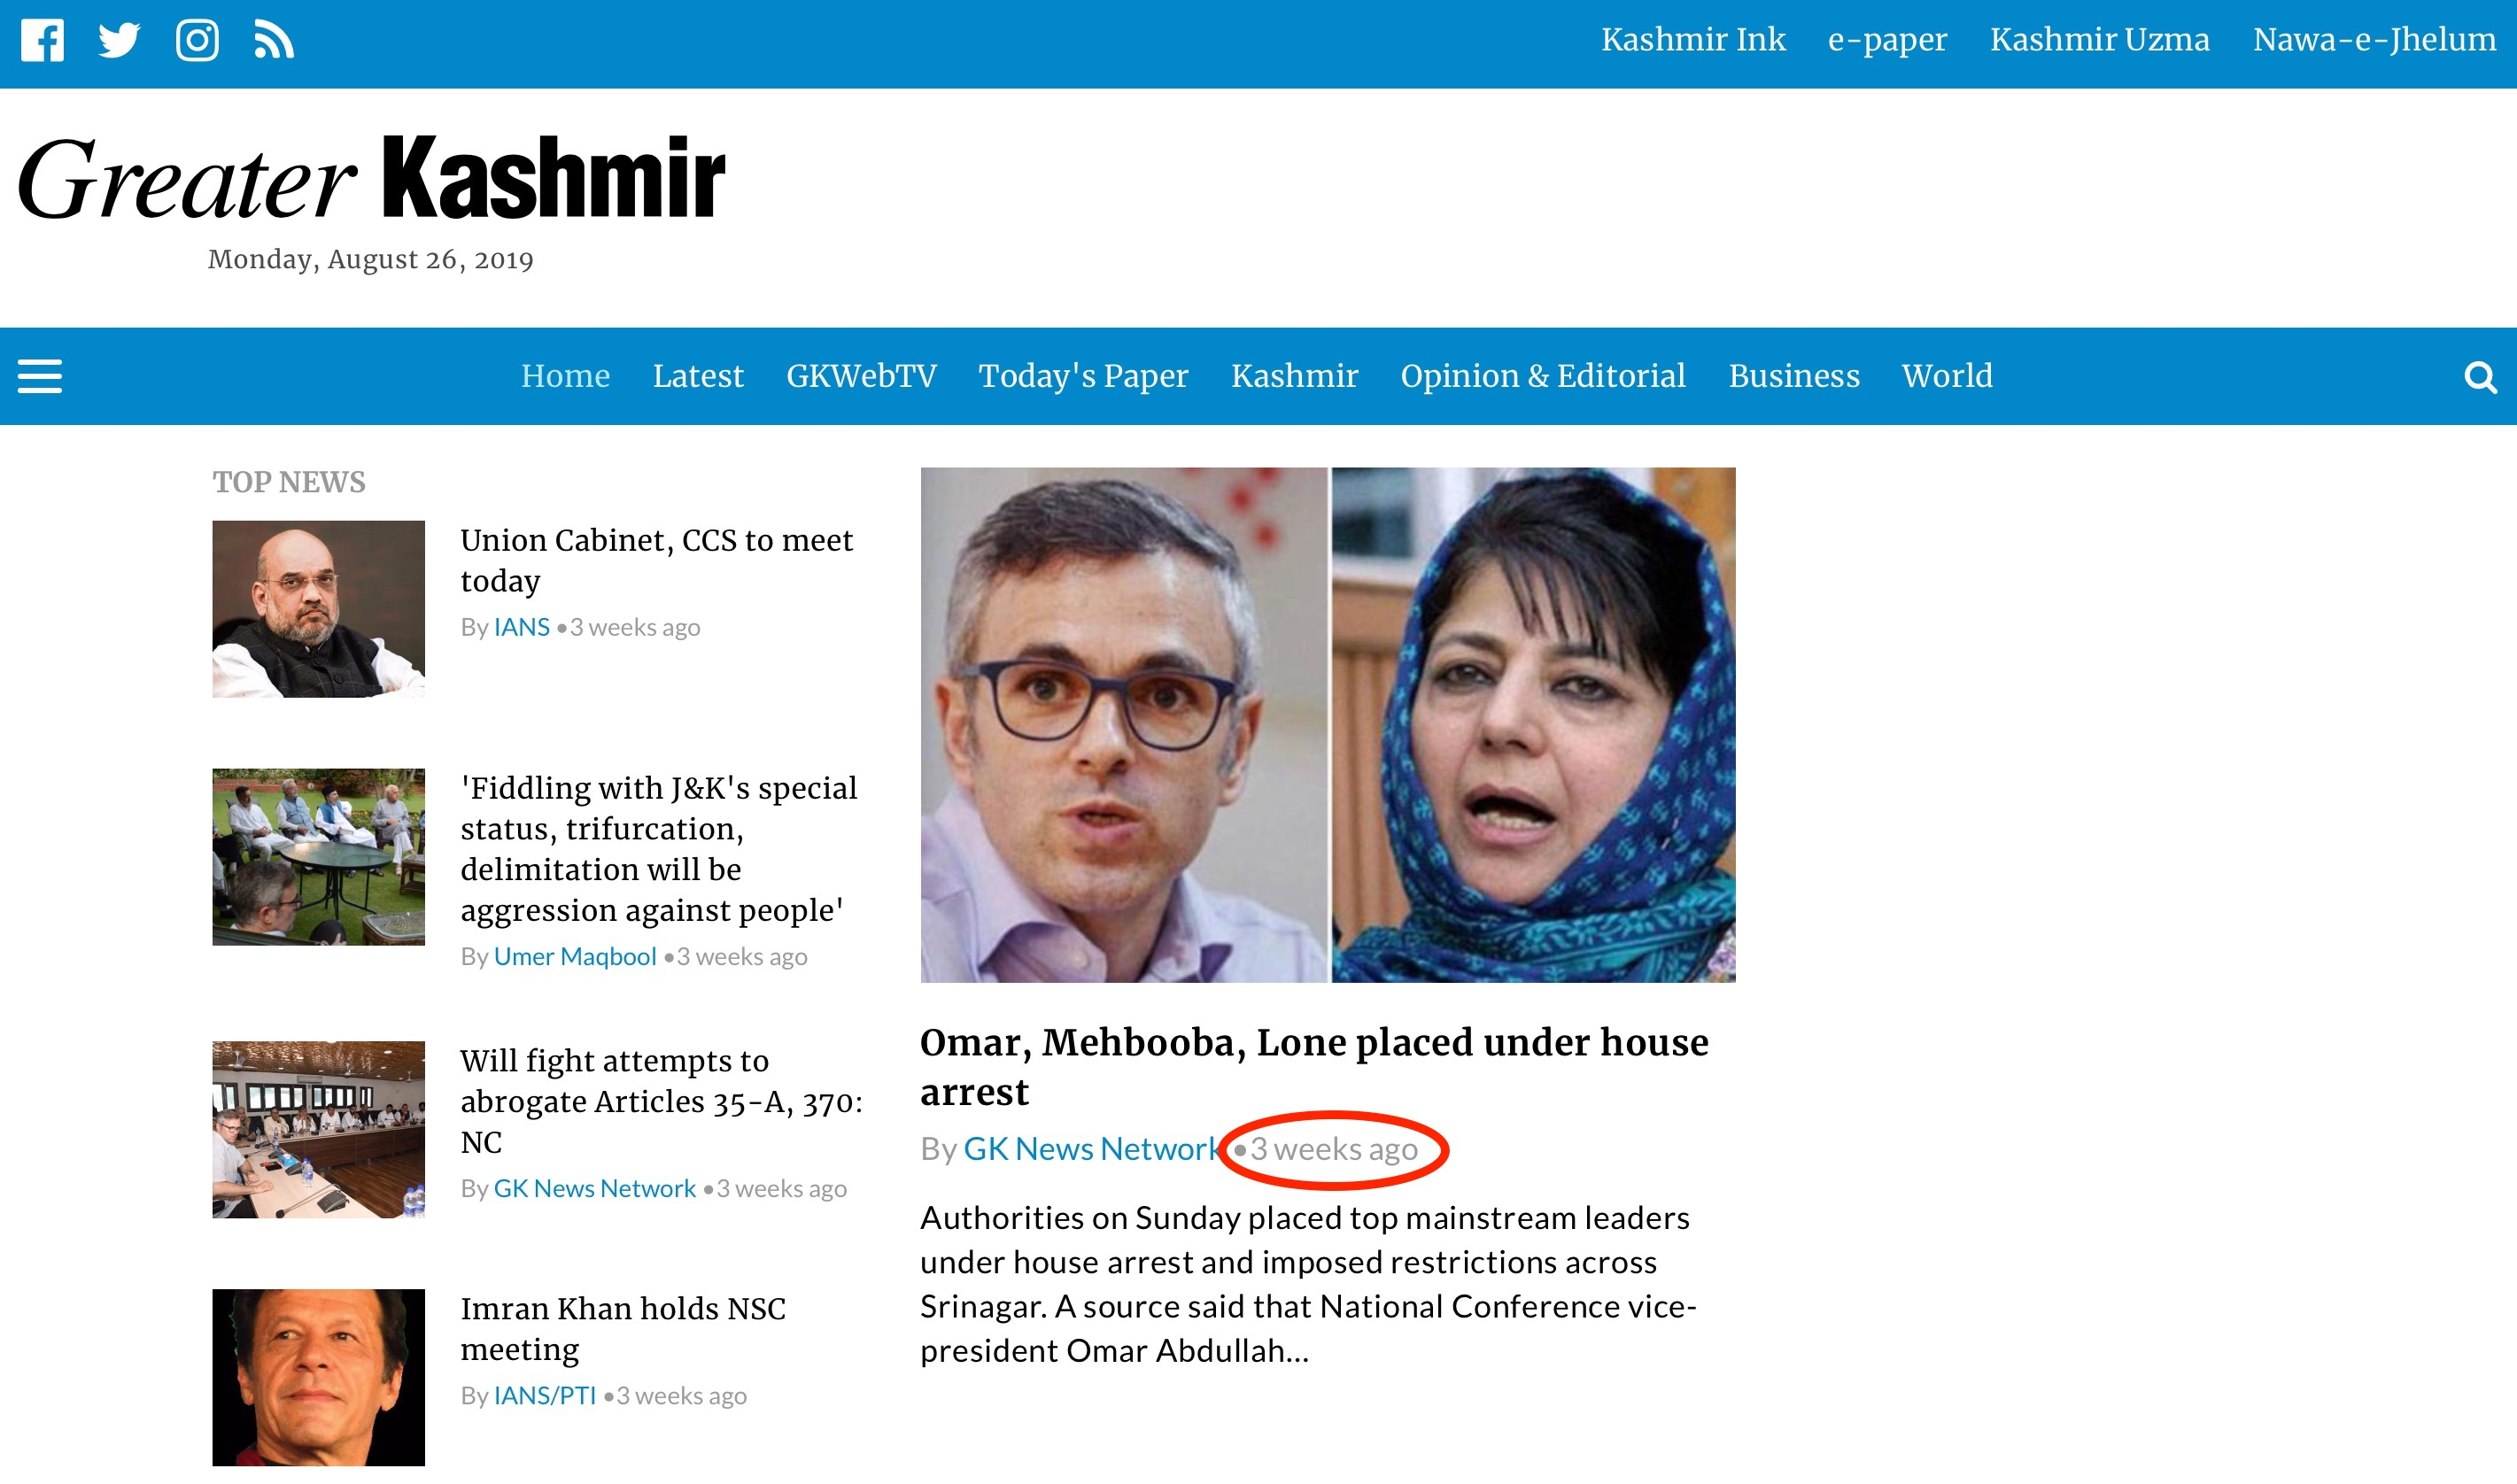 Greater Kashmir home page with their last updates from 3 weeks ago